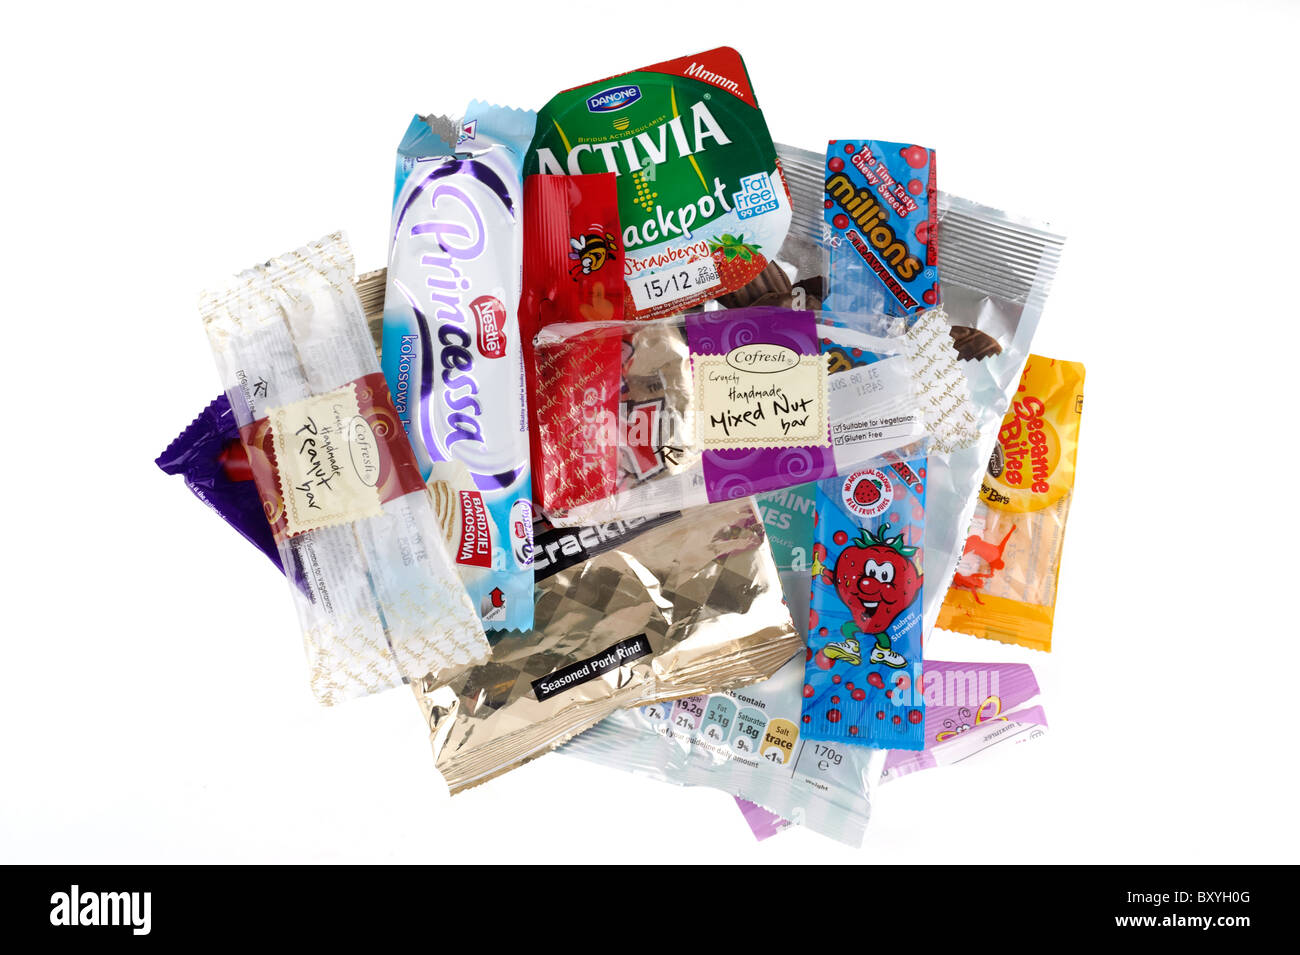 Pile of  product wrappers - Stock Image